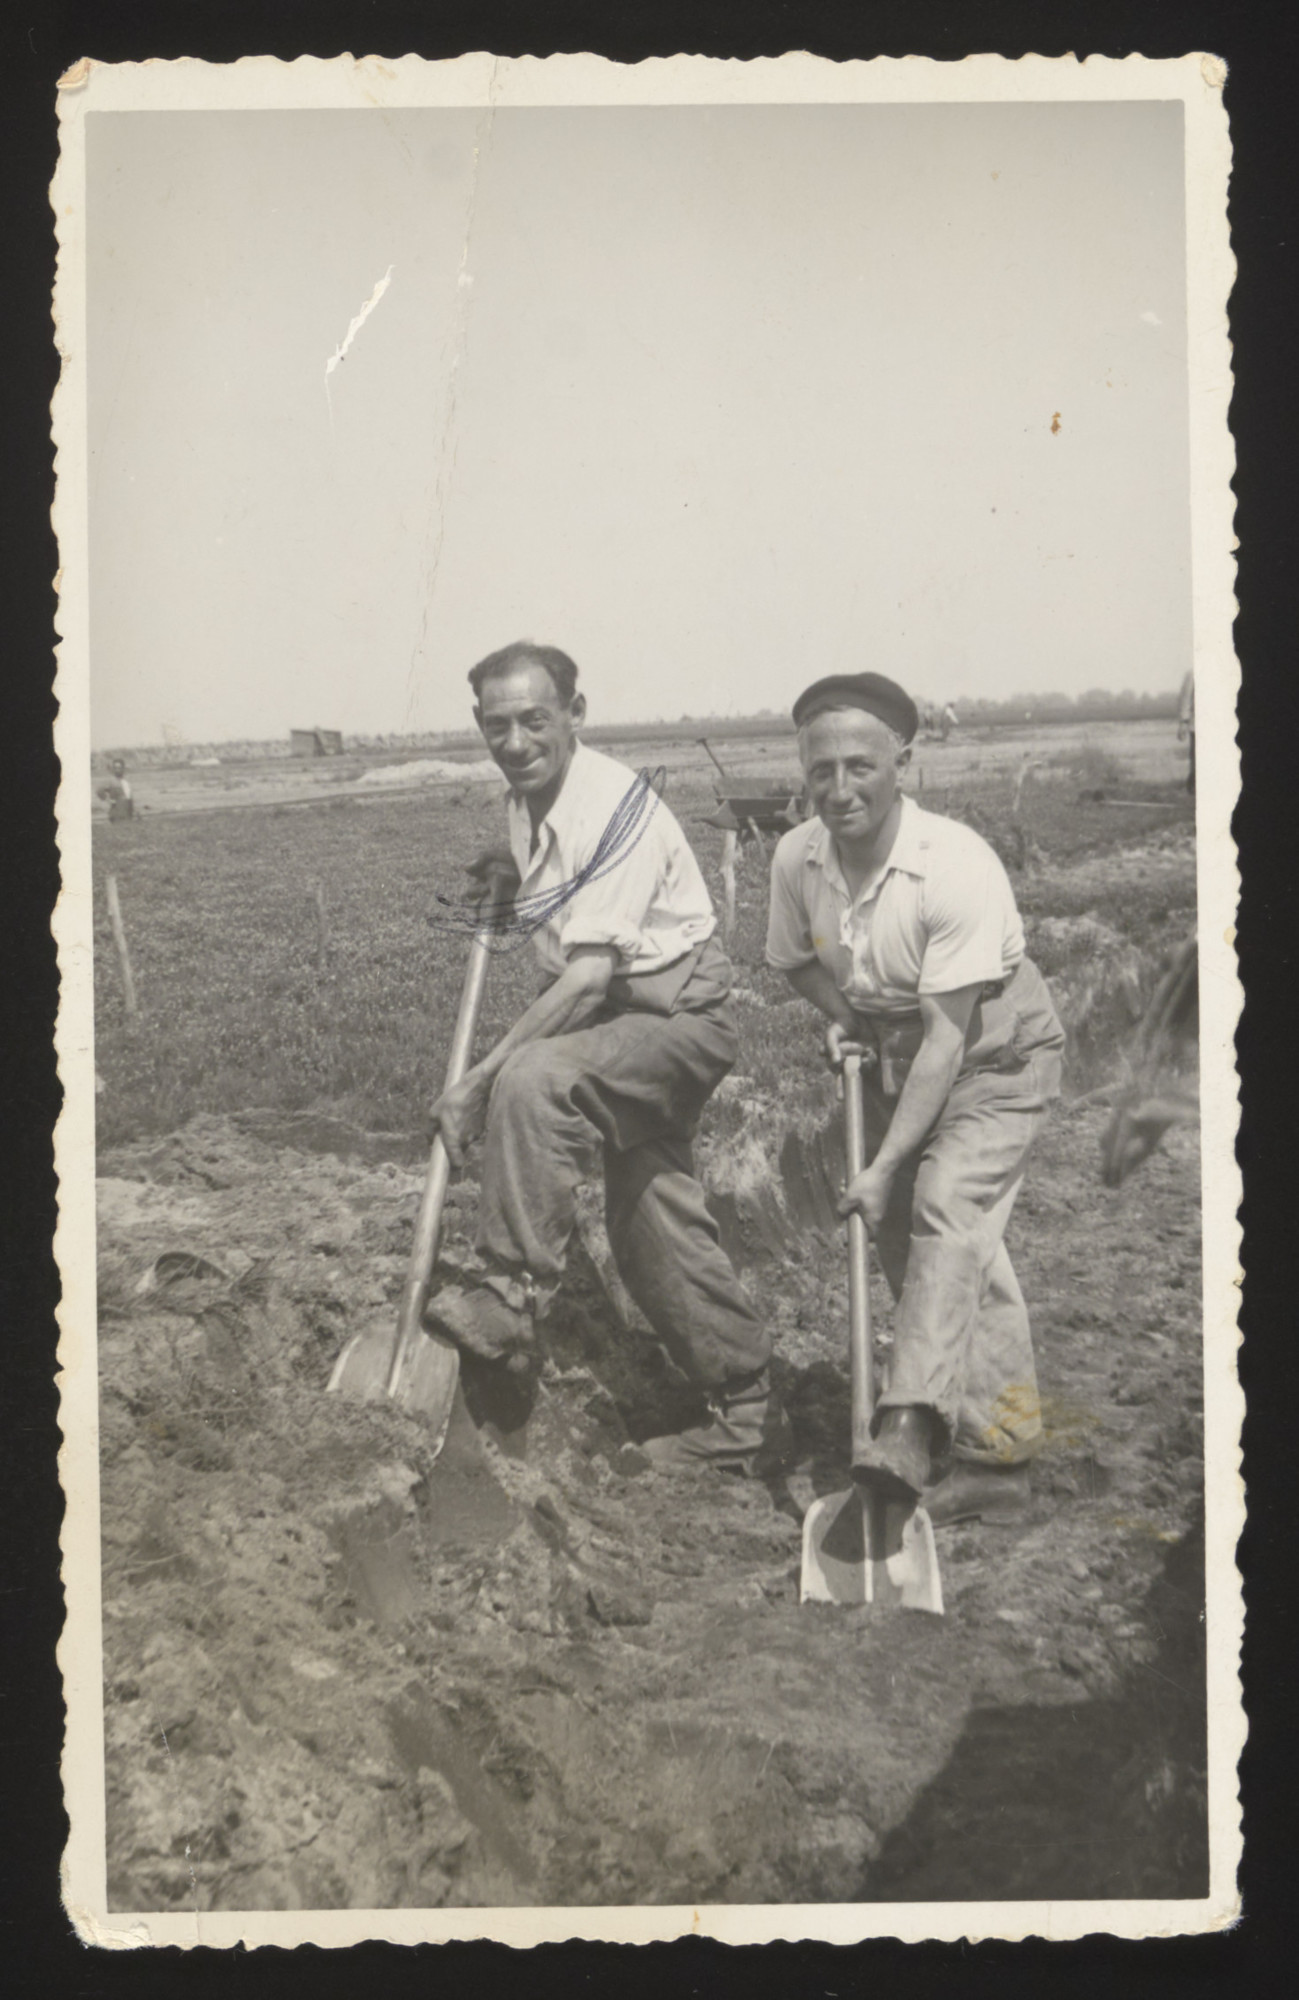 Isaac ven Leeuwen (left) and another gentleman dig in a field [probably in Westerbork].